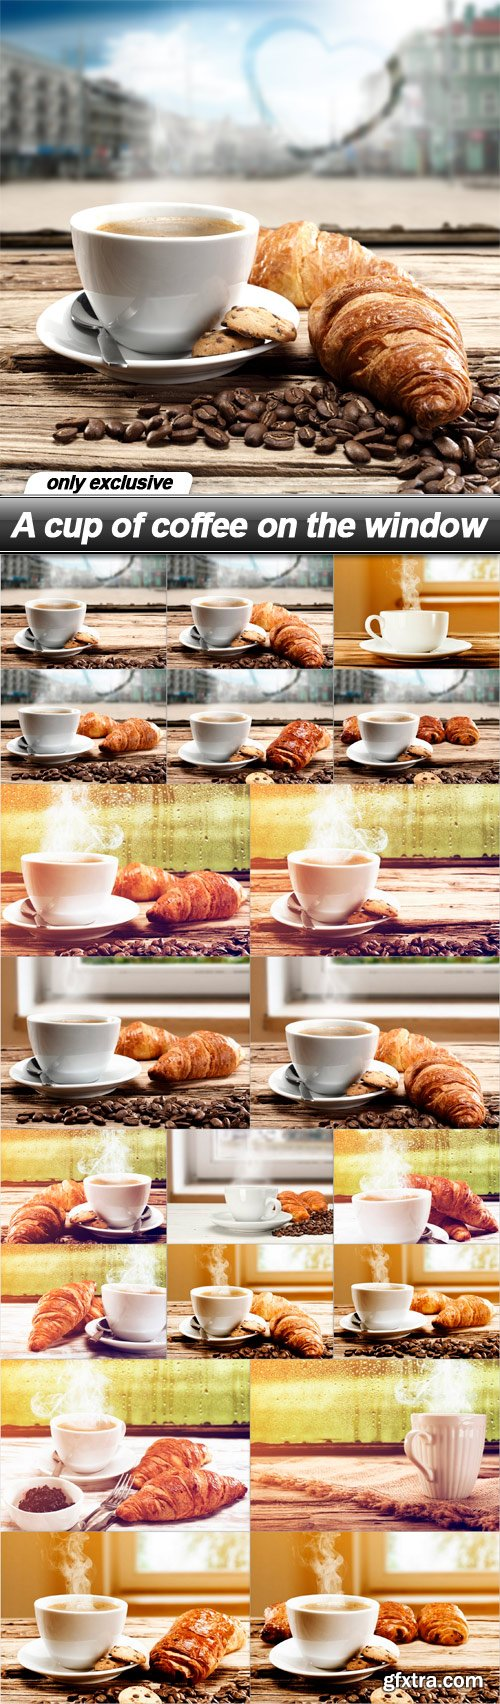 A cup of coffee on the window - 20 UHQ JPEG